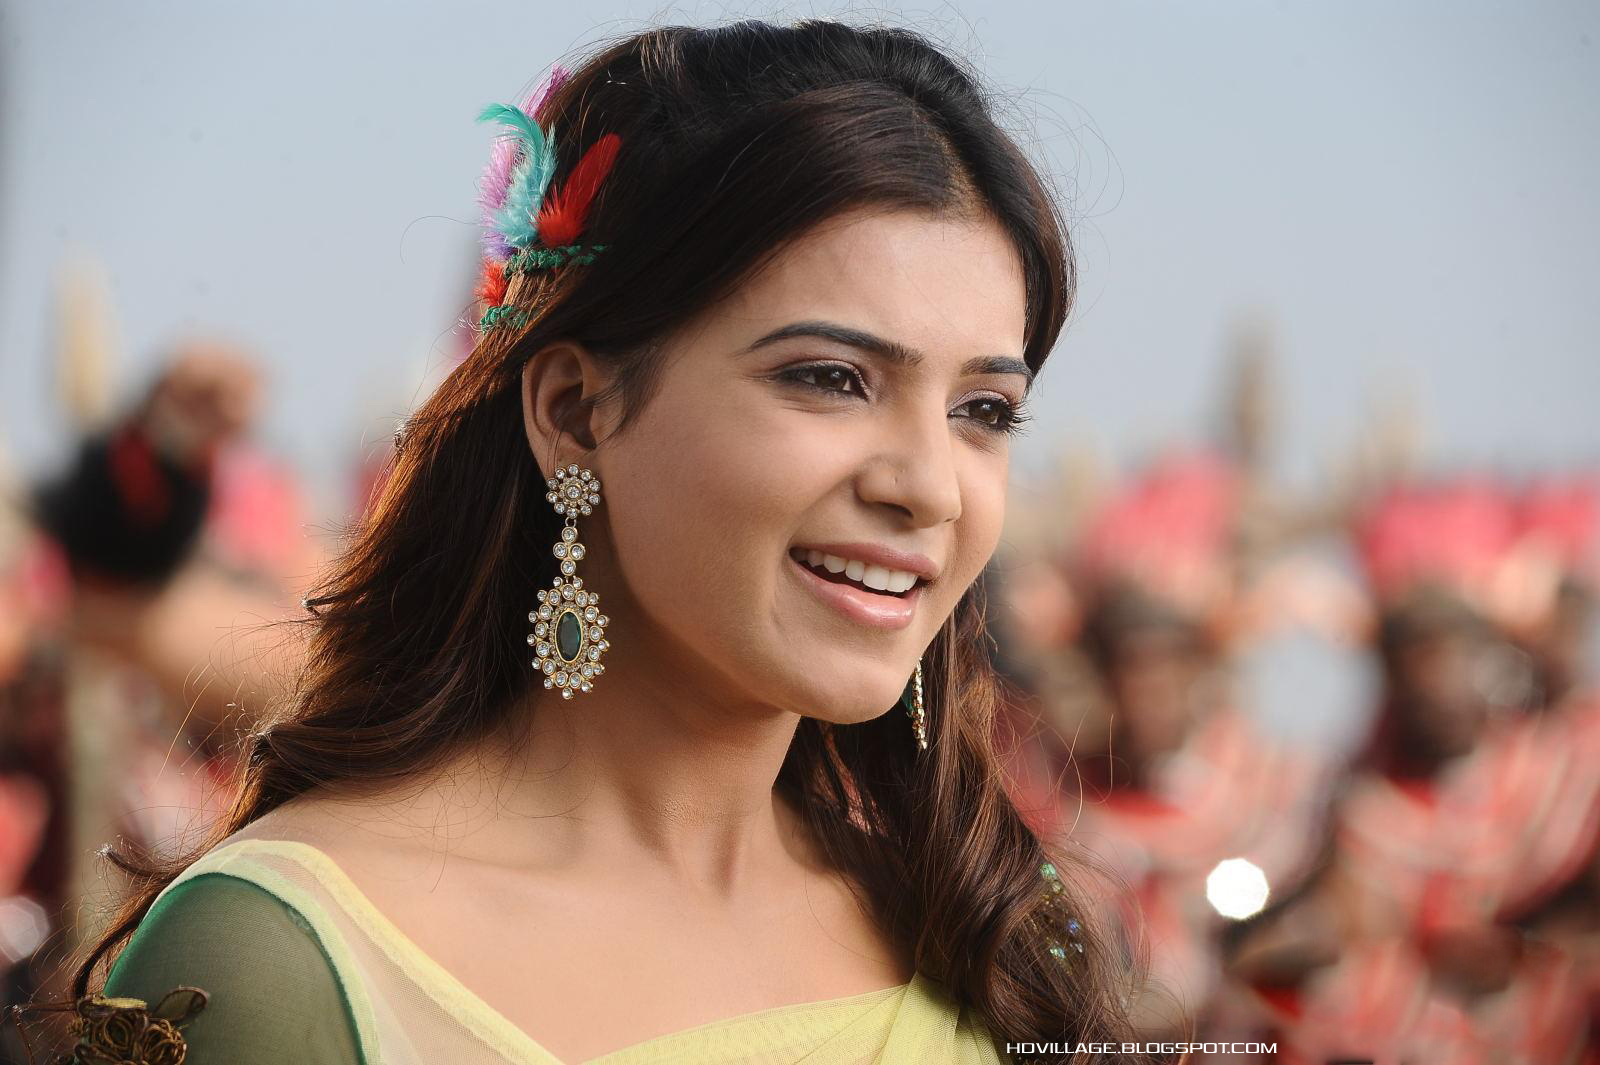 Samantha Hd Wallpapers: HD WALLPAPERS: SAMANTHA HD WALLPAPERS